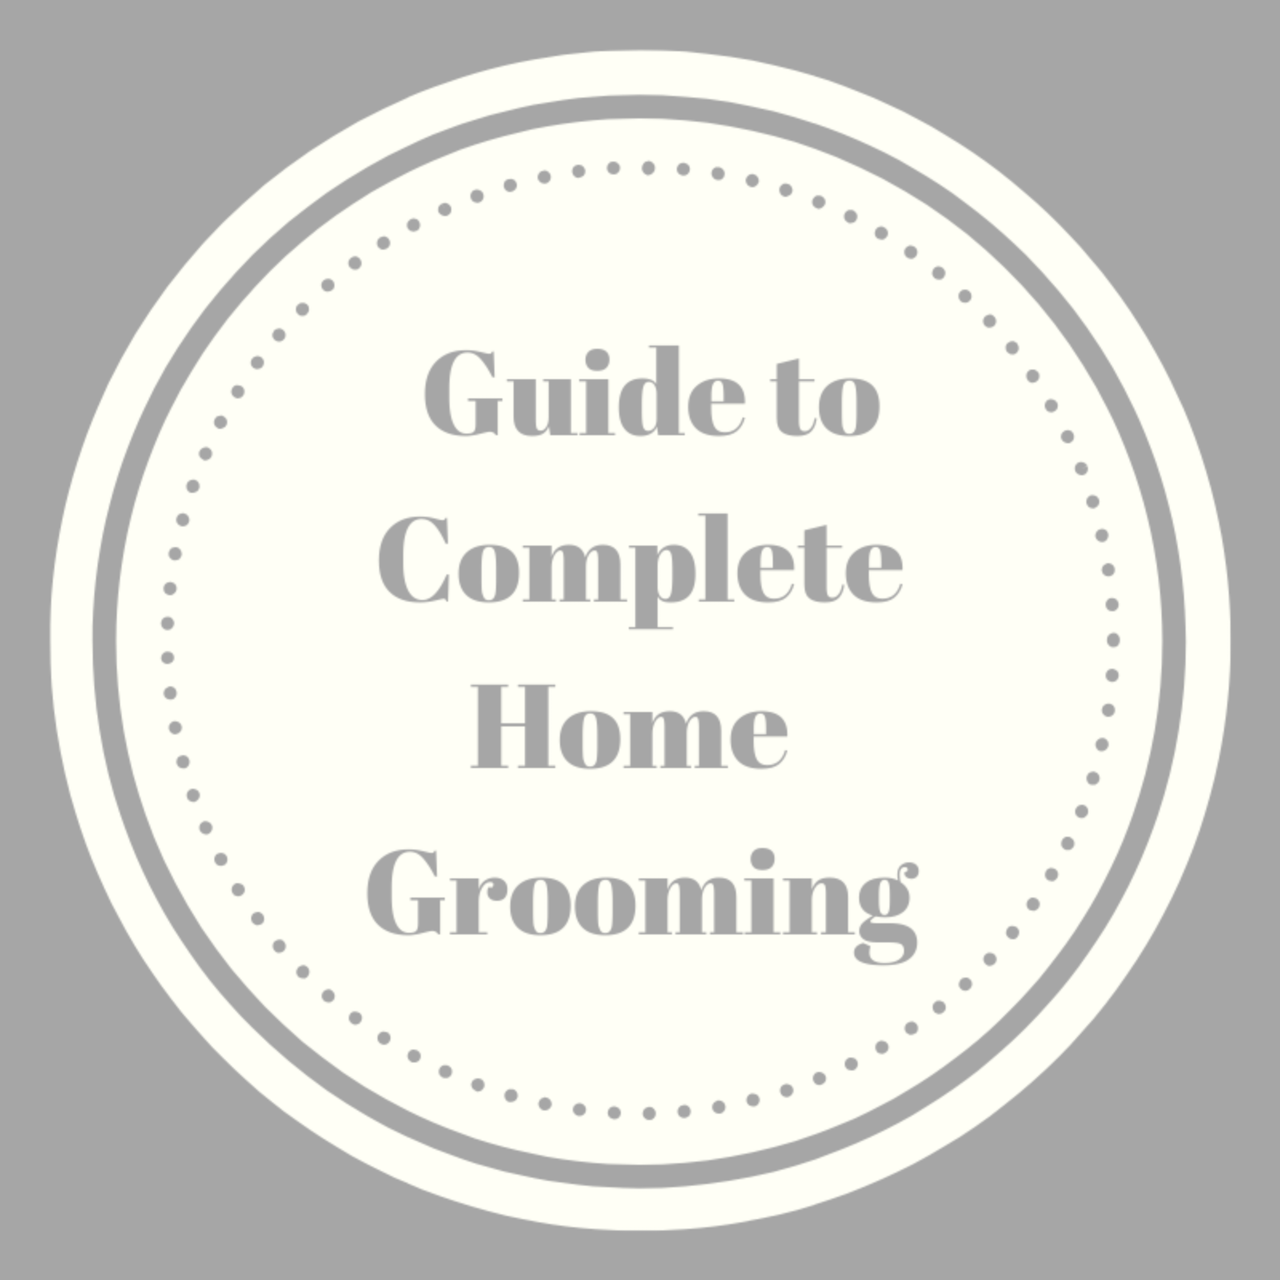 Guide to Complete Home Grooming